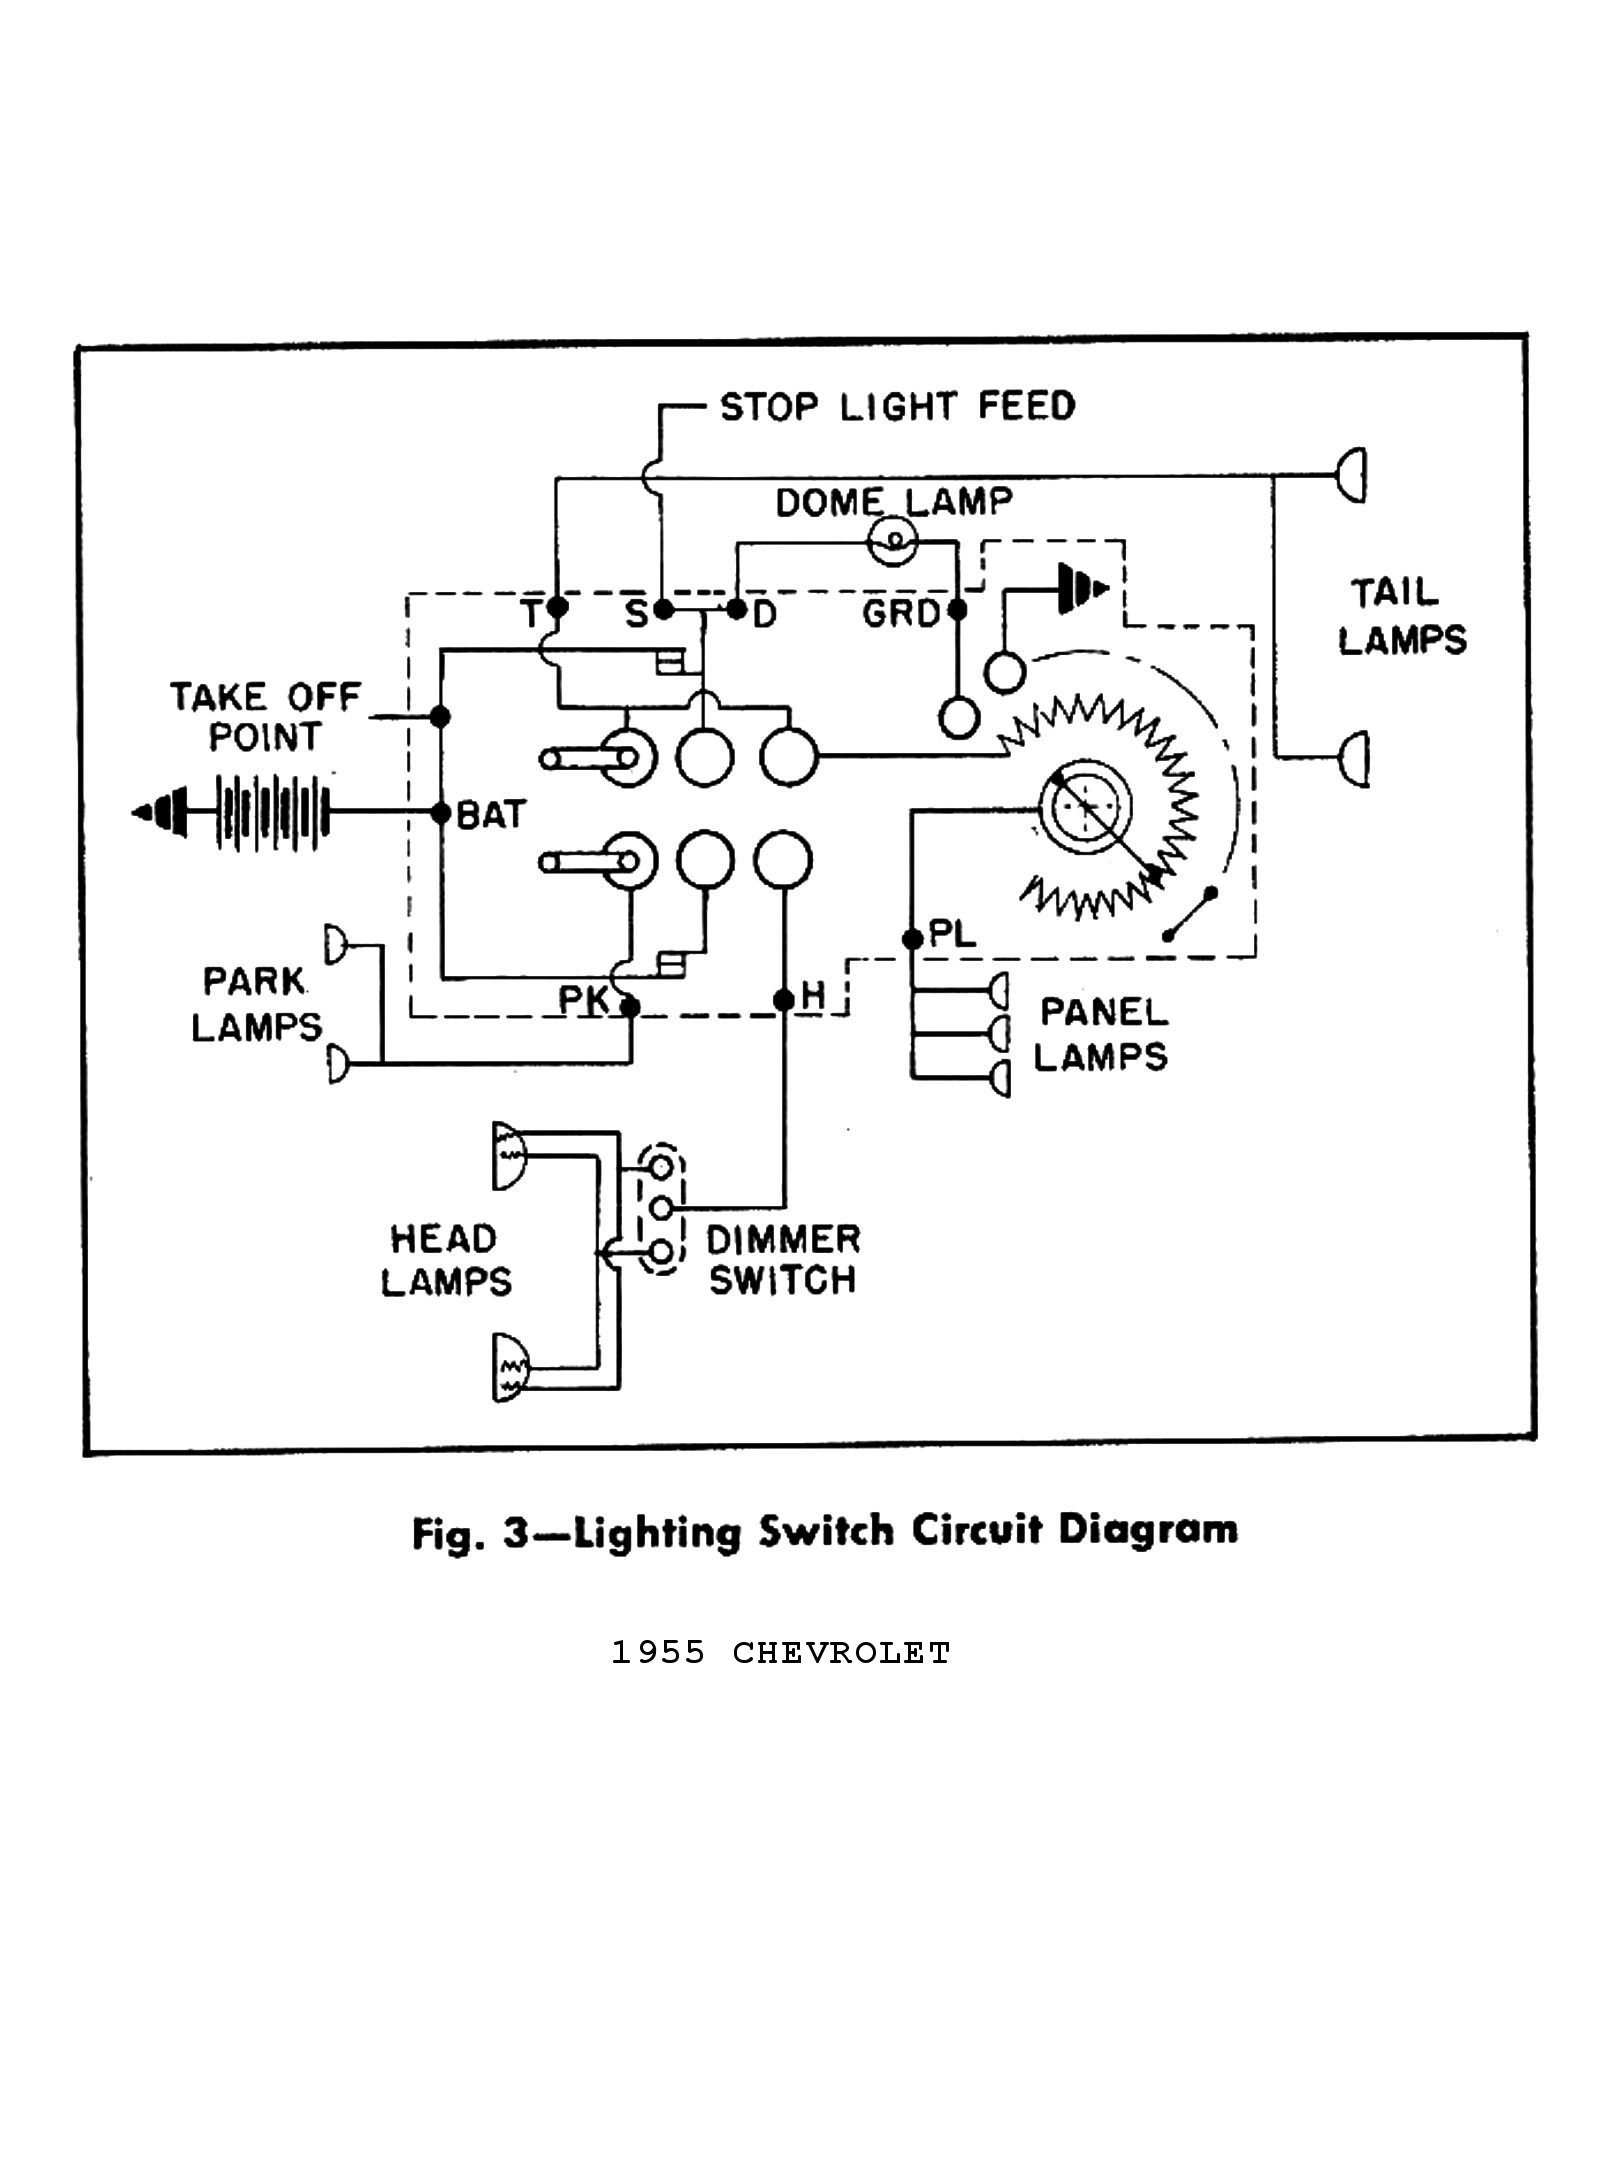 55ctsm1203 chevy wiring diagrams 55 chevy headlight switch wiring diagram at honlapkeszites.co